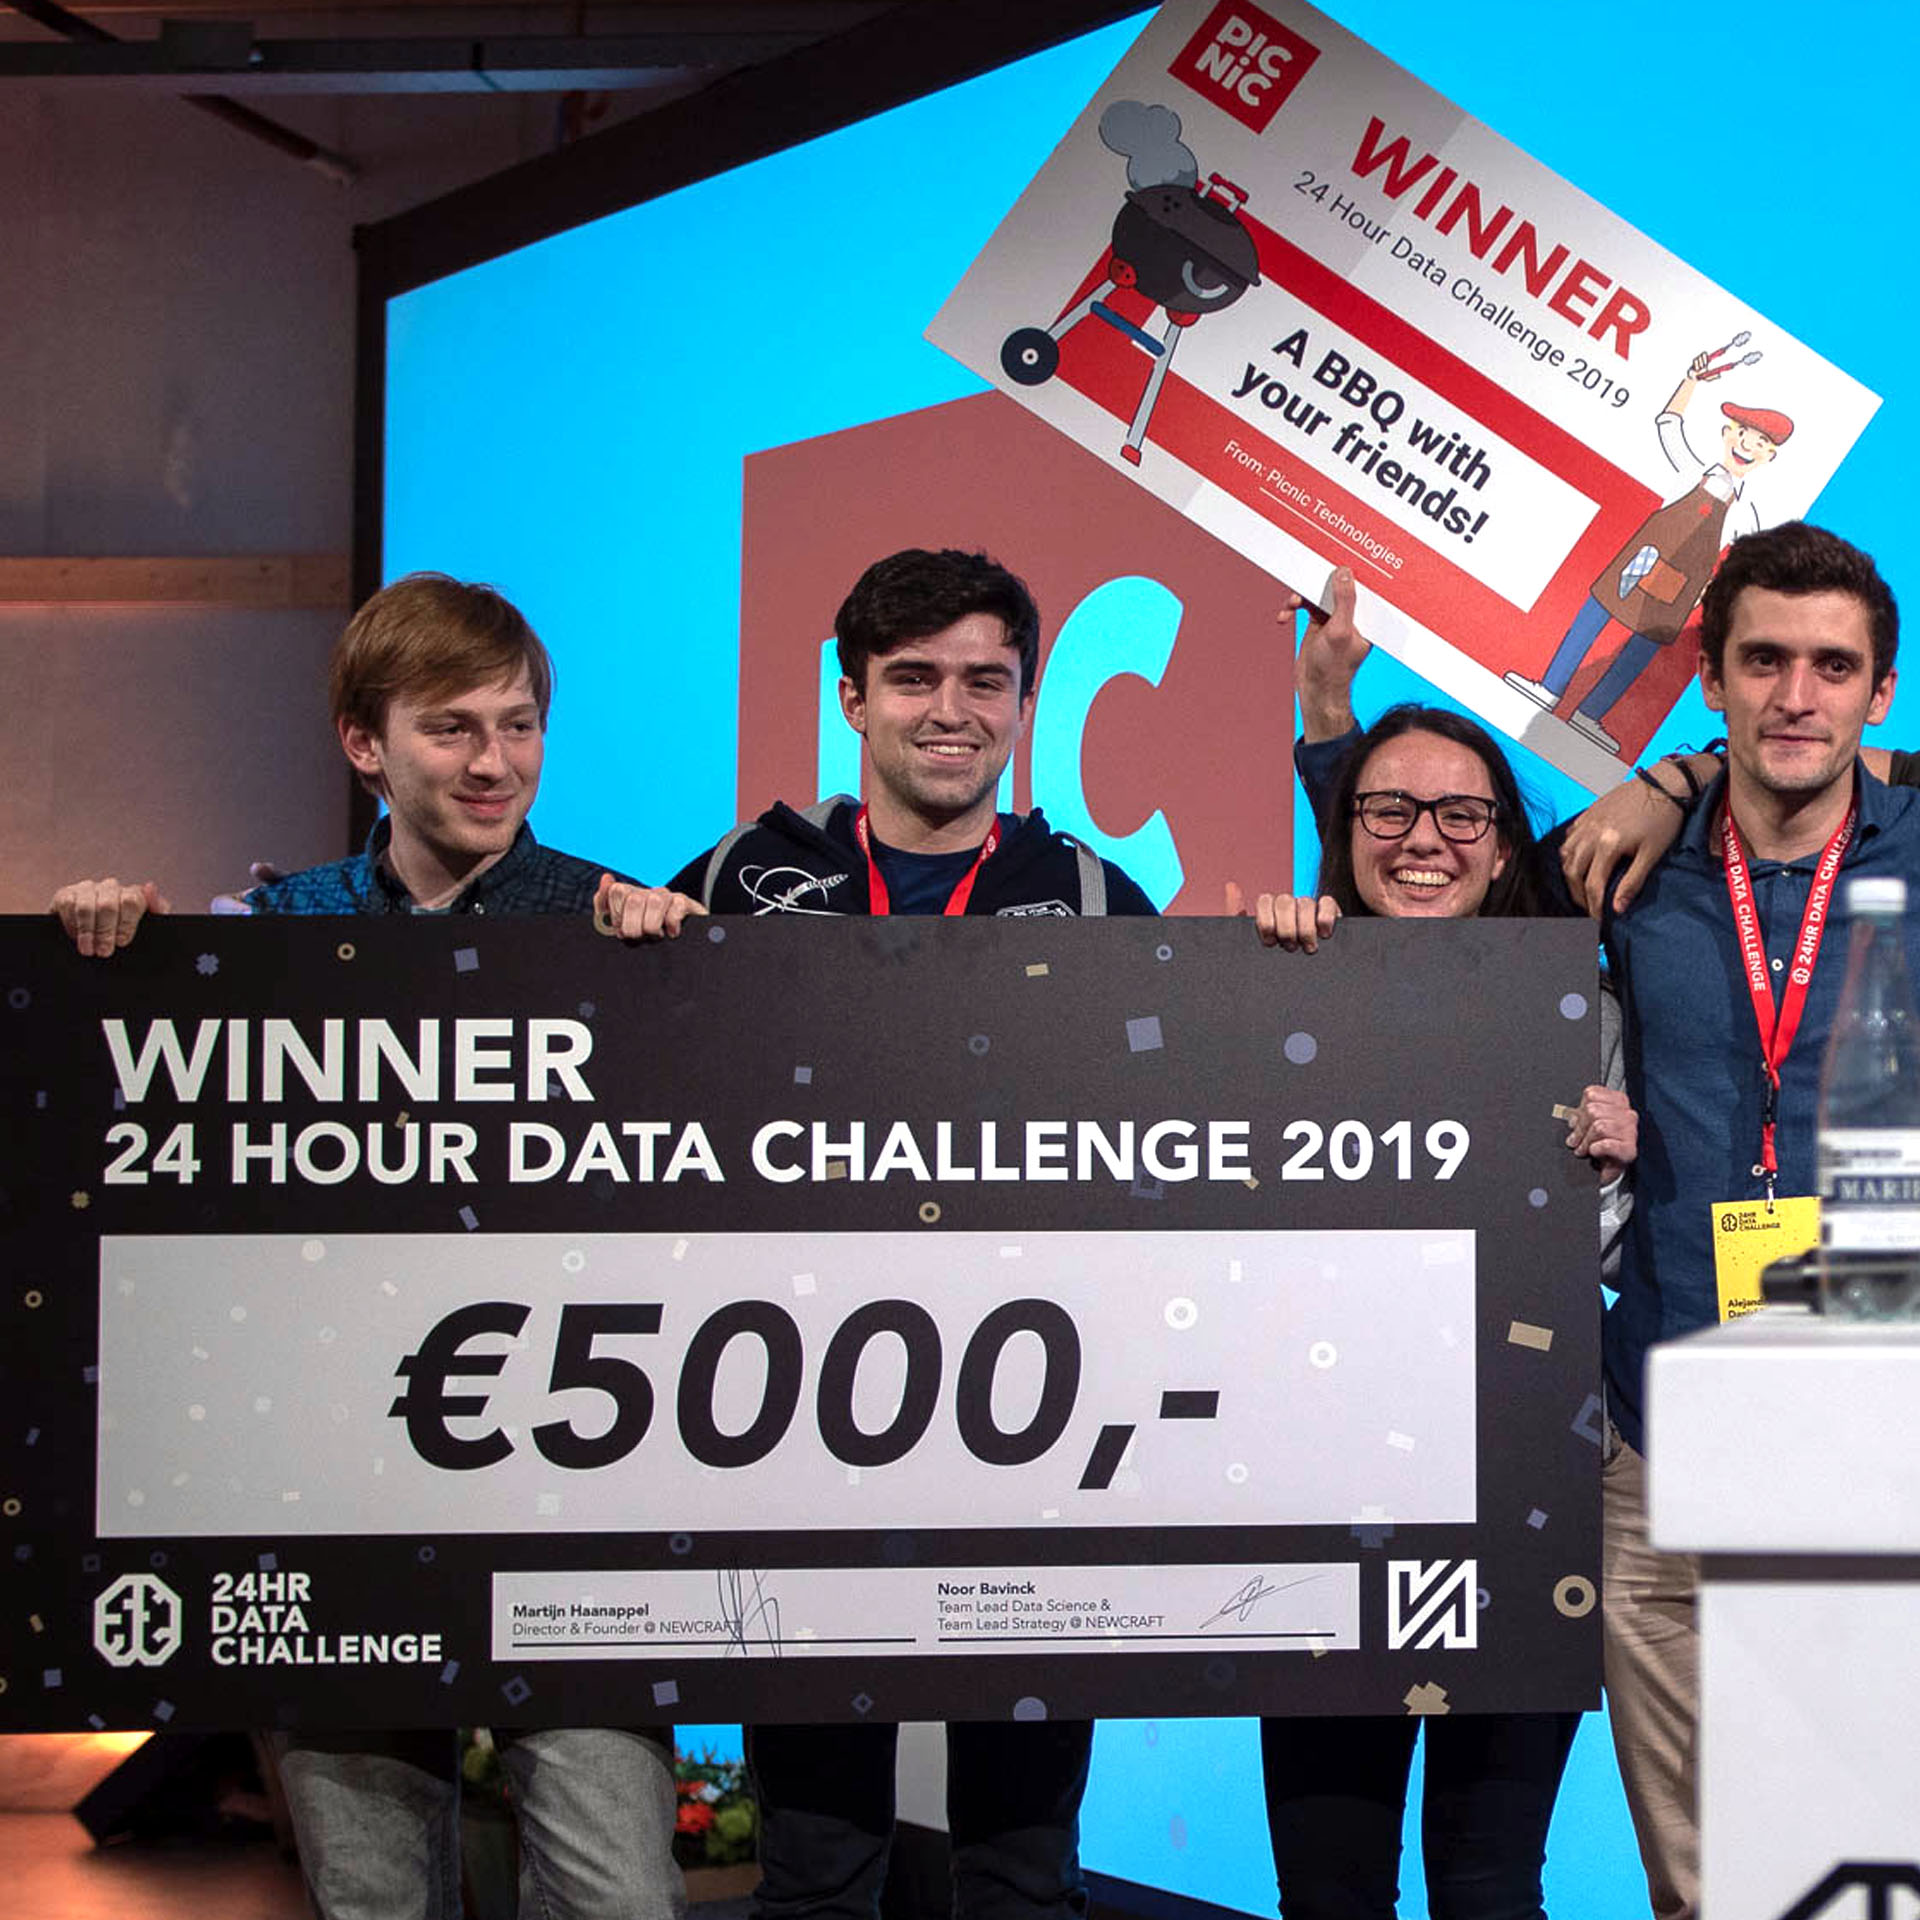 24 HR Data Challenge Winner 2019